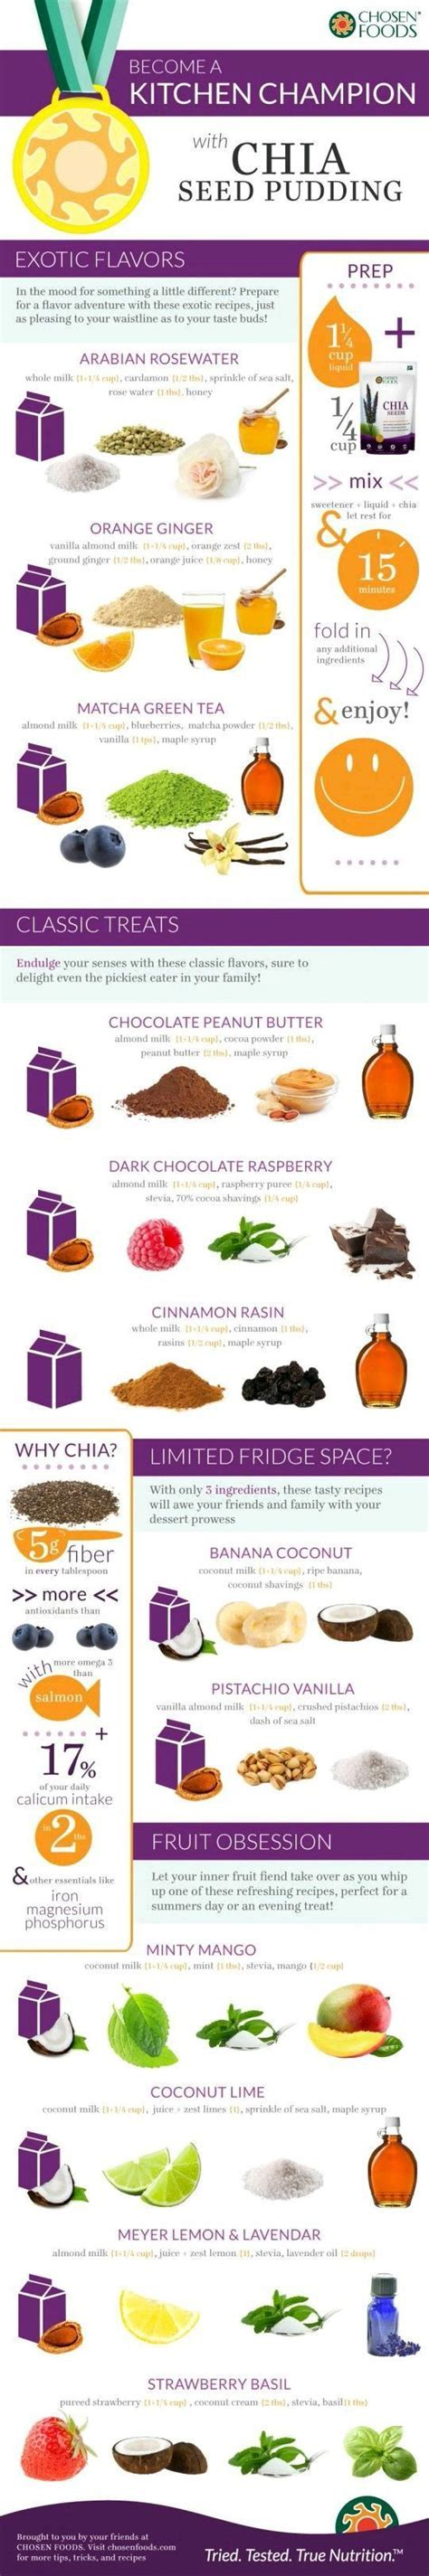 Pin by Suzana ?timac on foods   Pinterest   Food